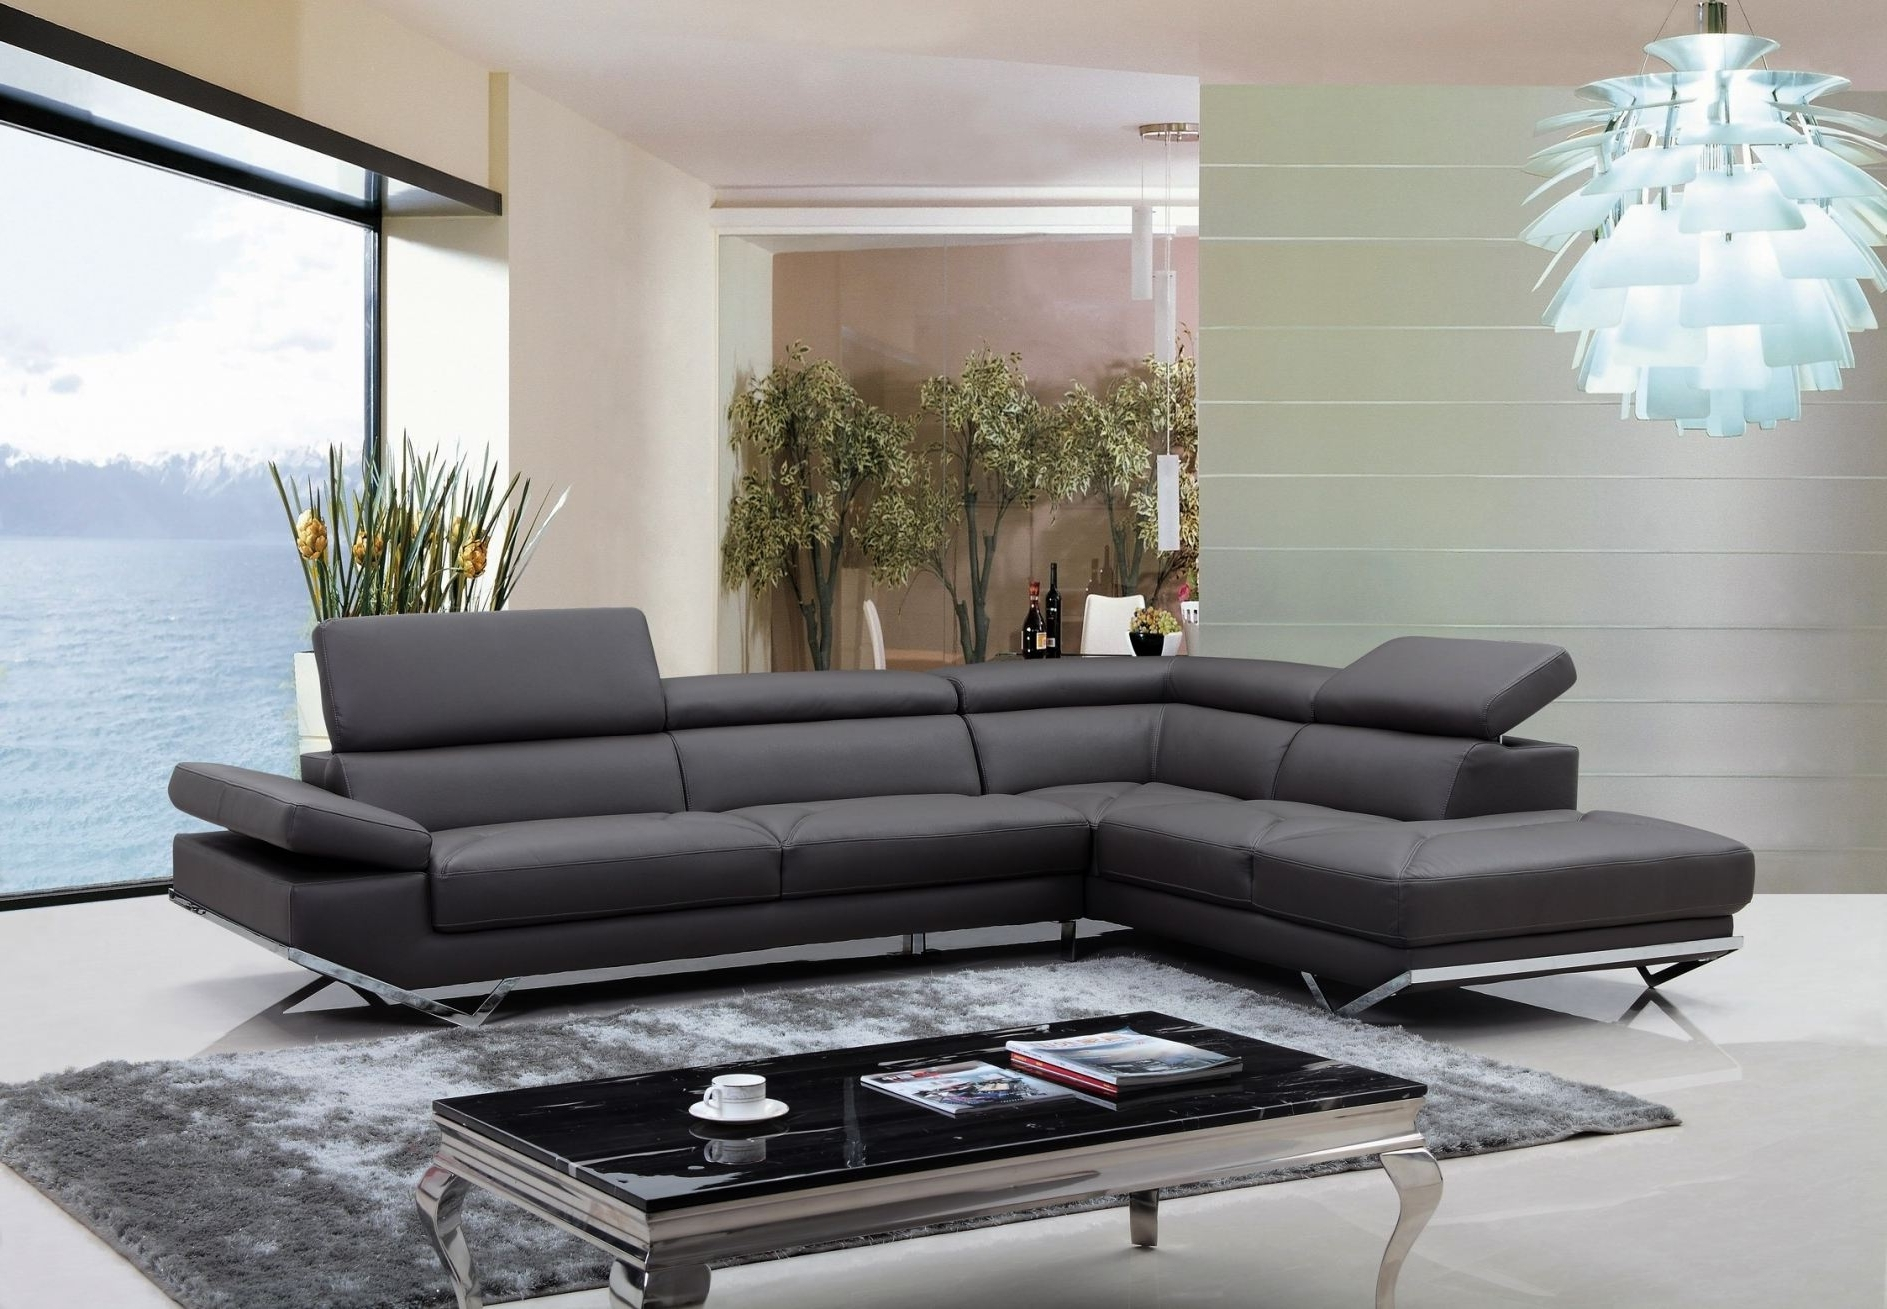 Sofas Magnificent Brown Leather Sectional Contemporary Furniture Within 2018 High Point Nc Sectional Sofas (View 4 of 20)